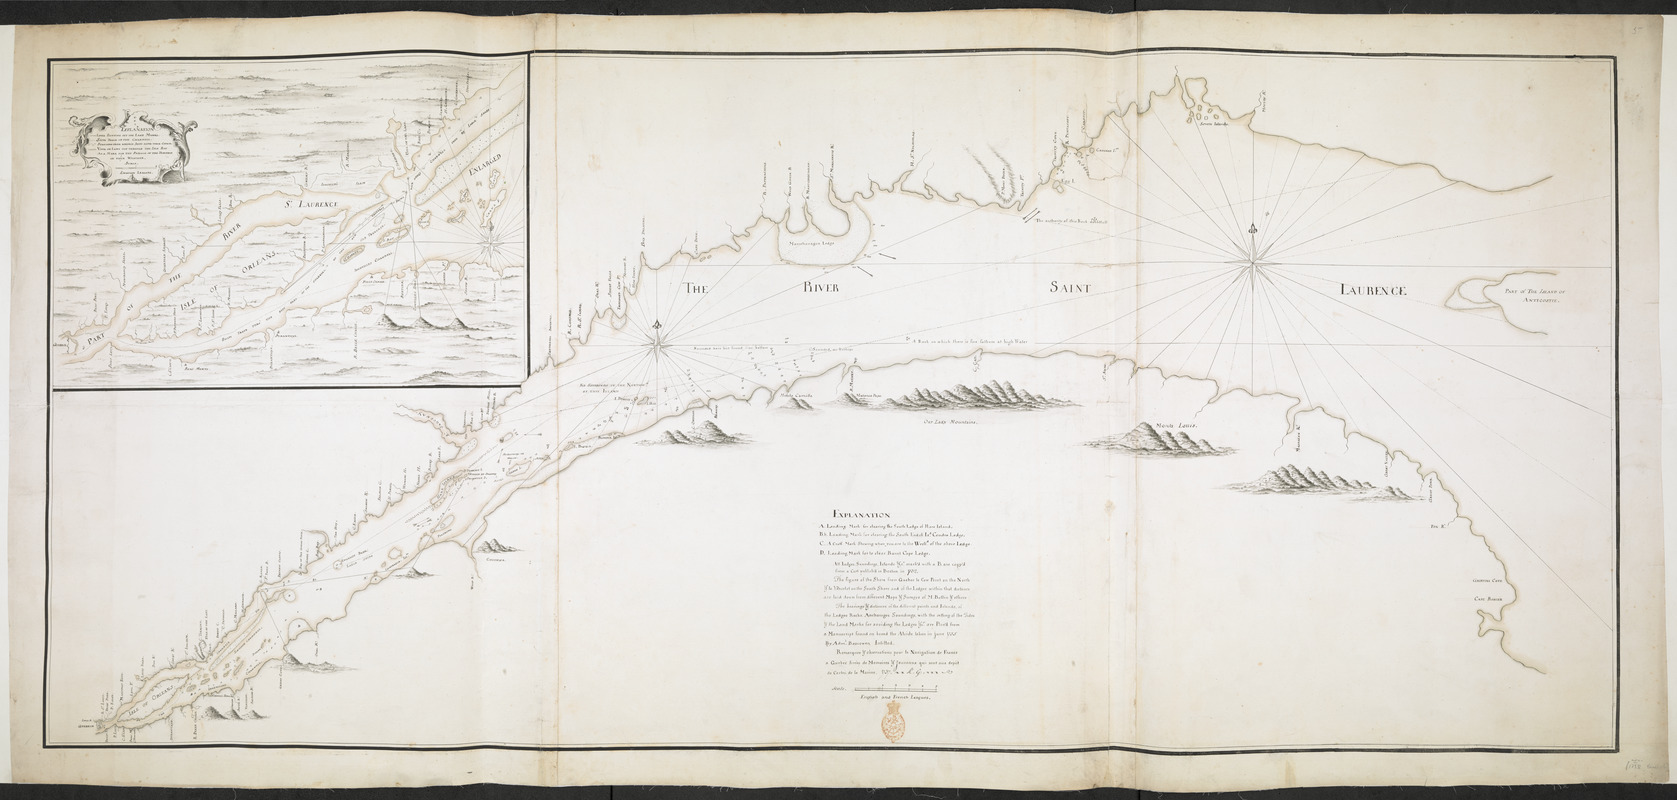 [Chart of the Saint Lawrence River from Anticosti to Quebec]